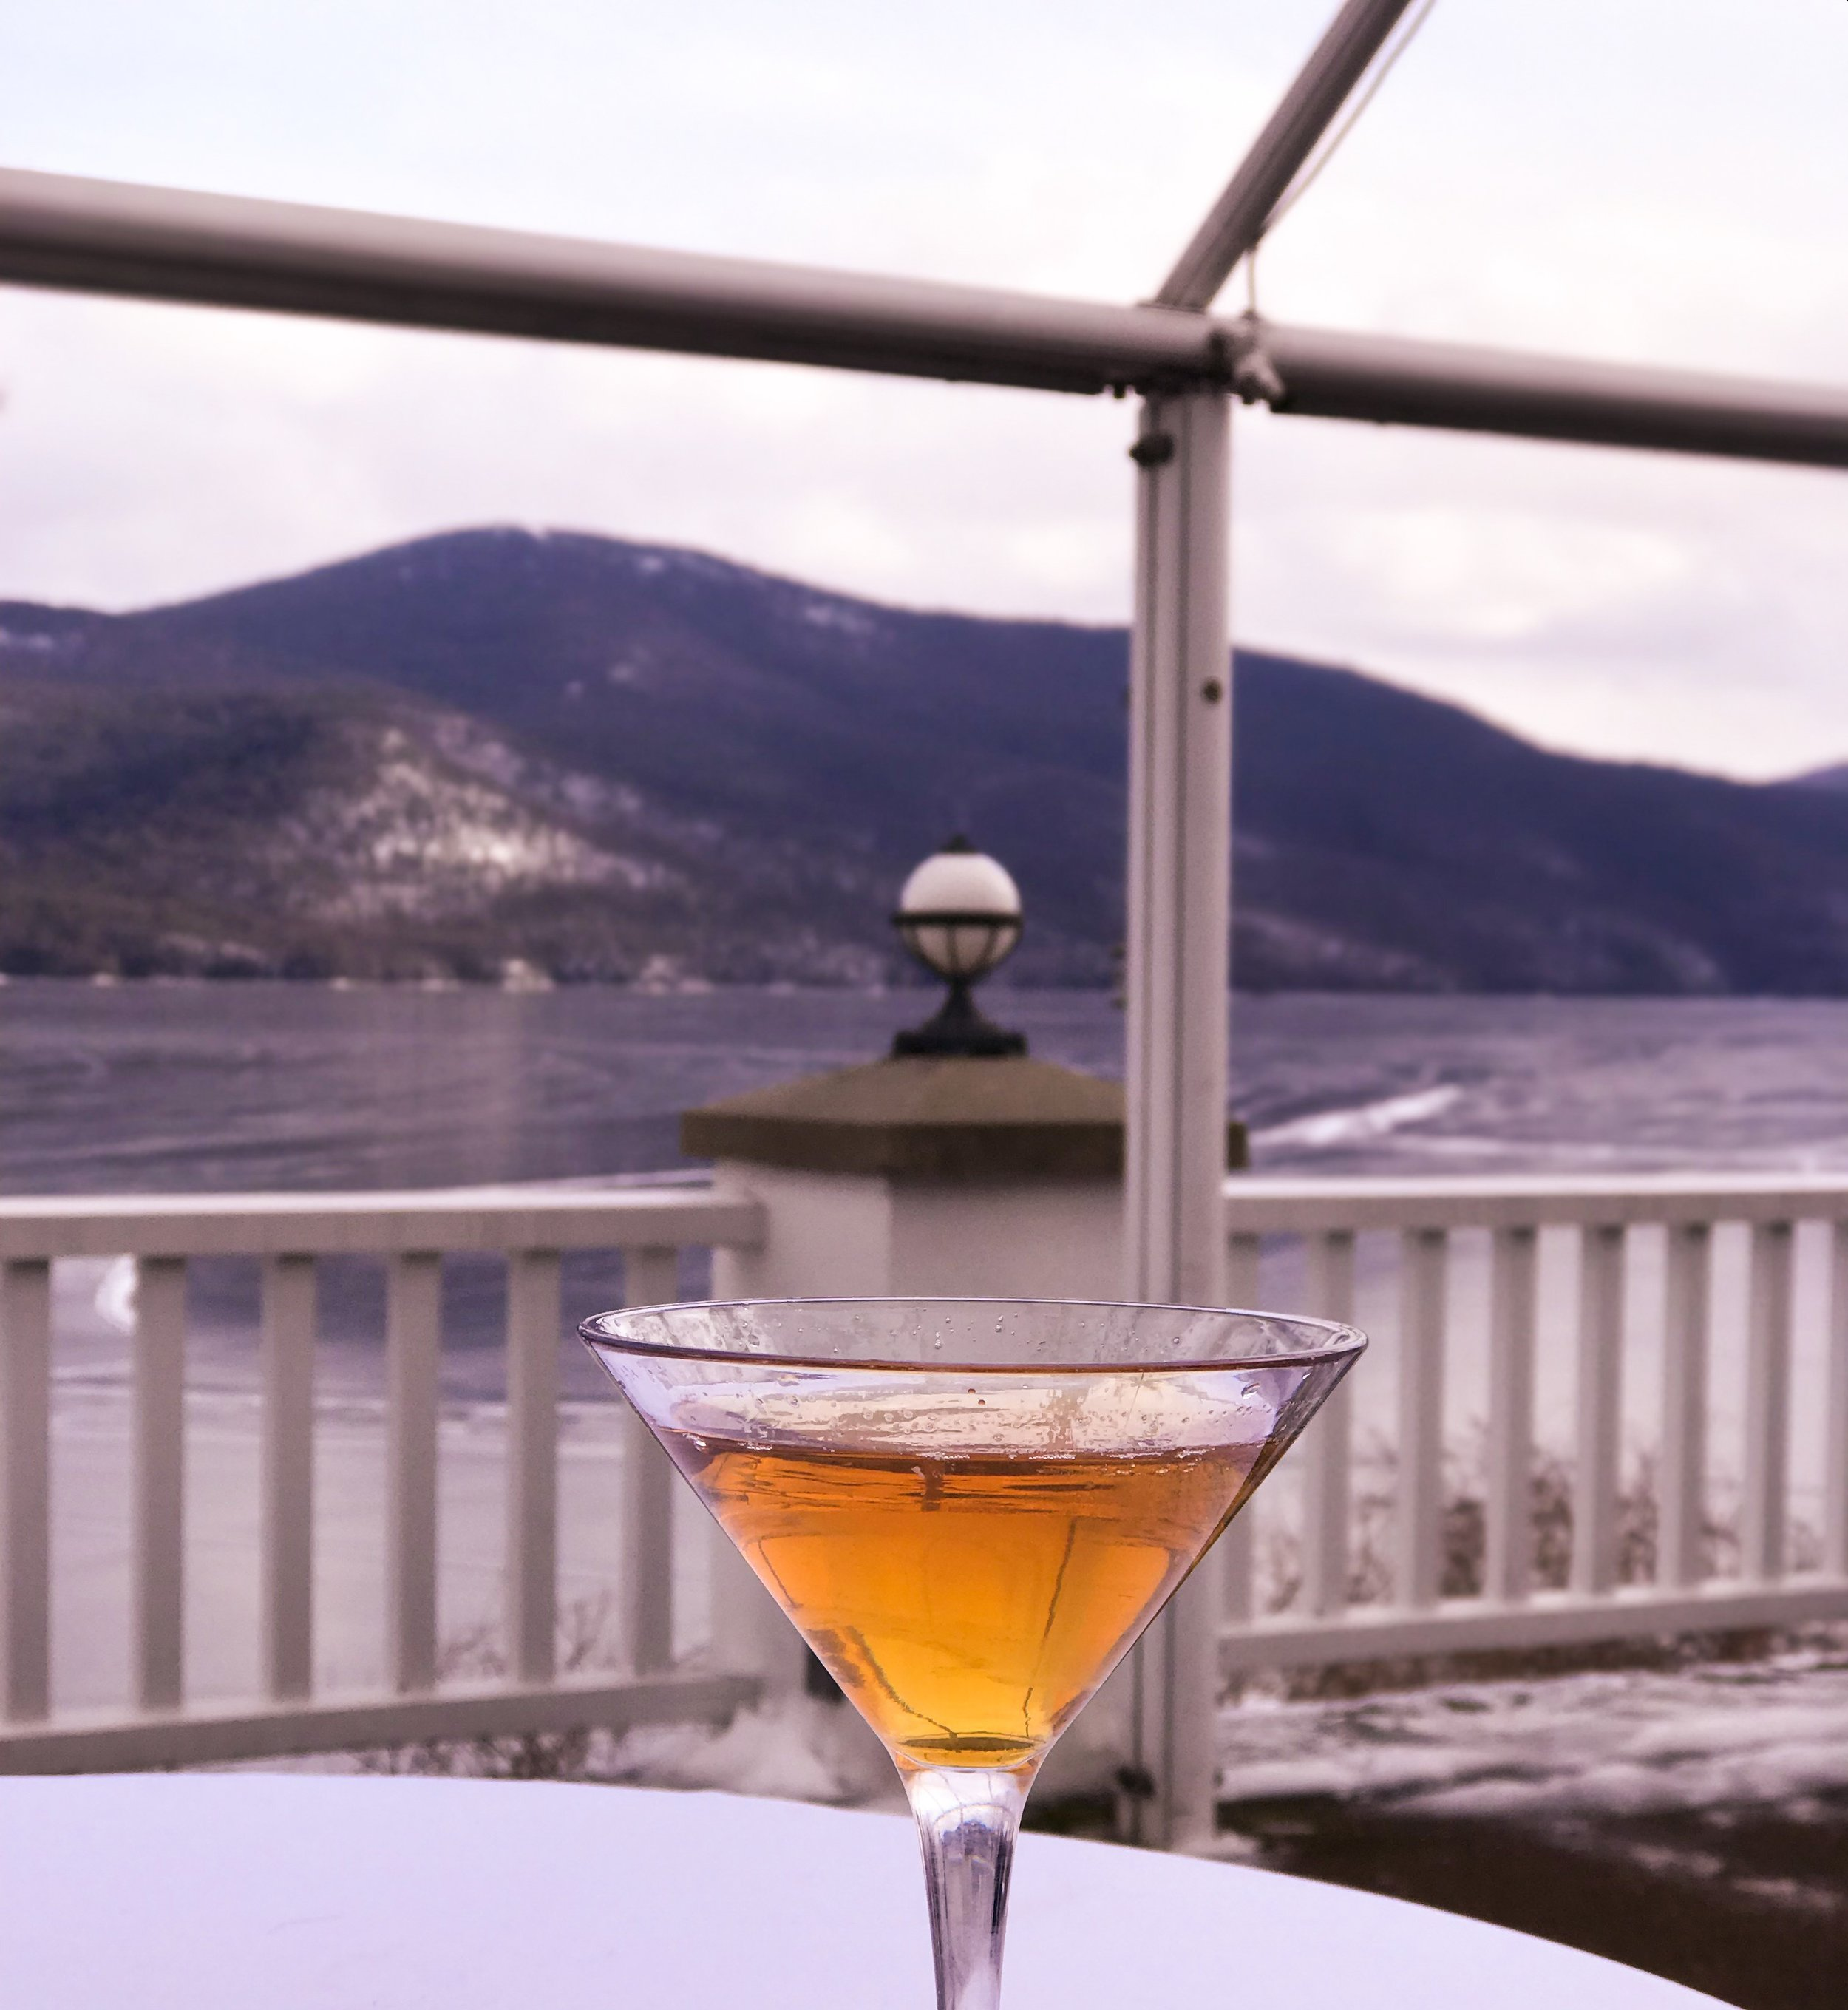 Nor'easter cocktail, with frozen Lake George as a backdrop.